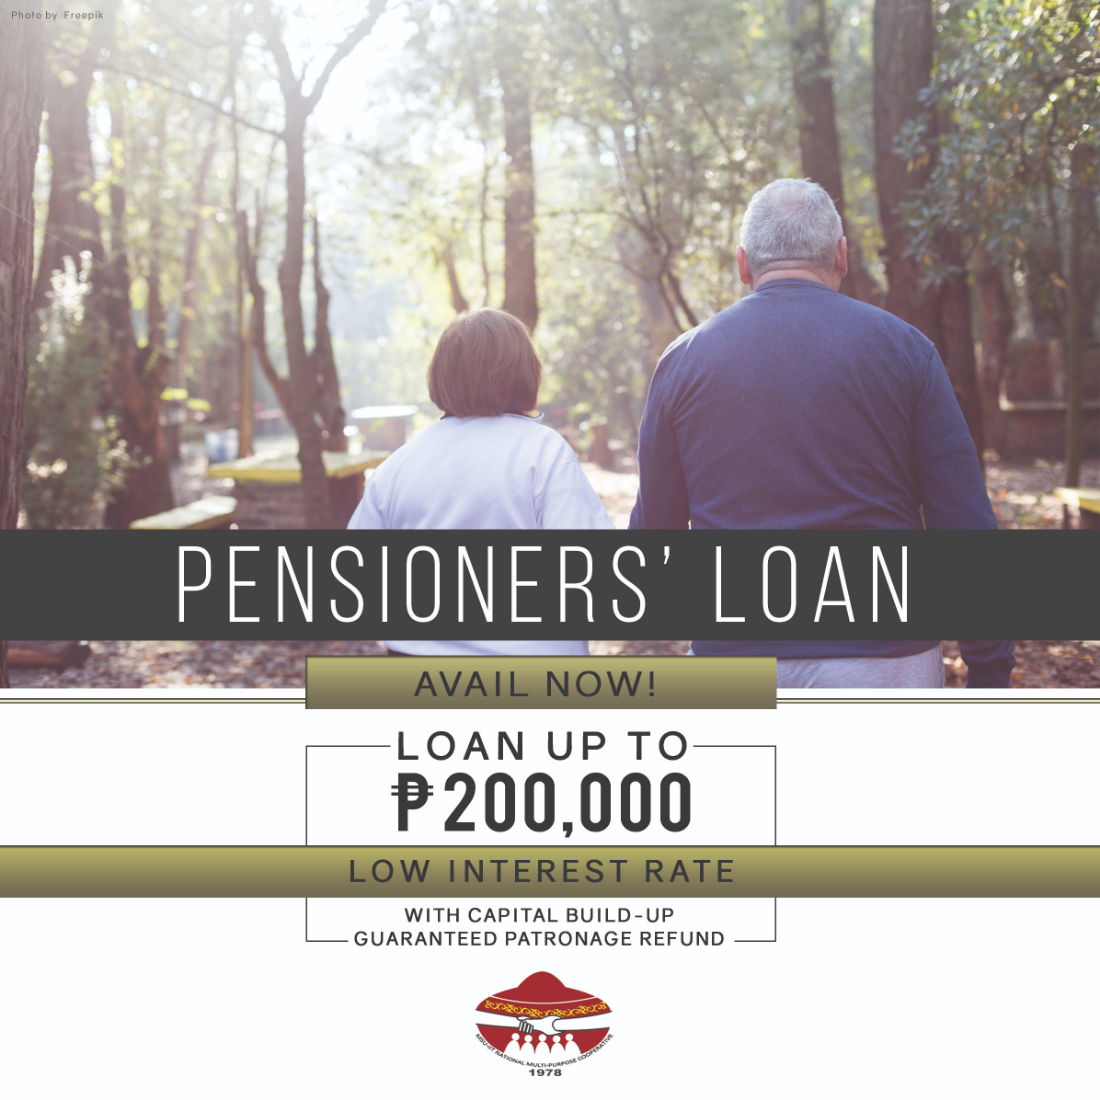 Pensioner's Loan